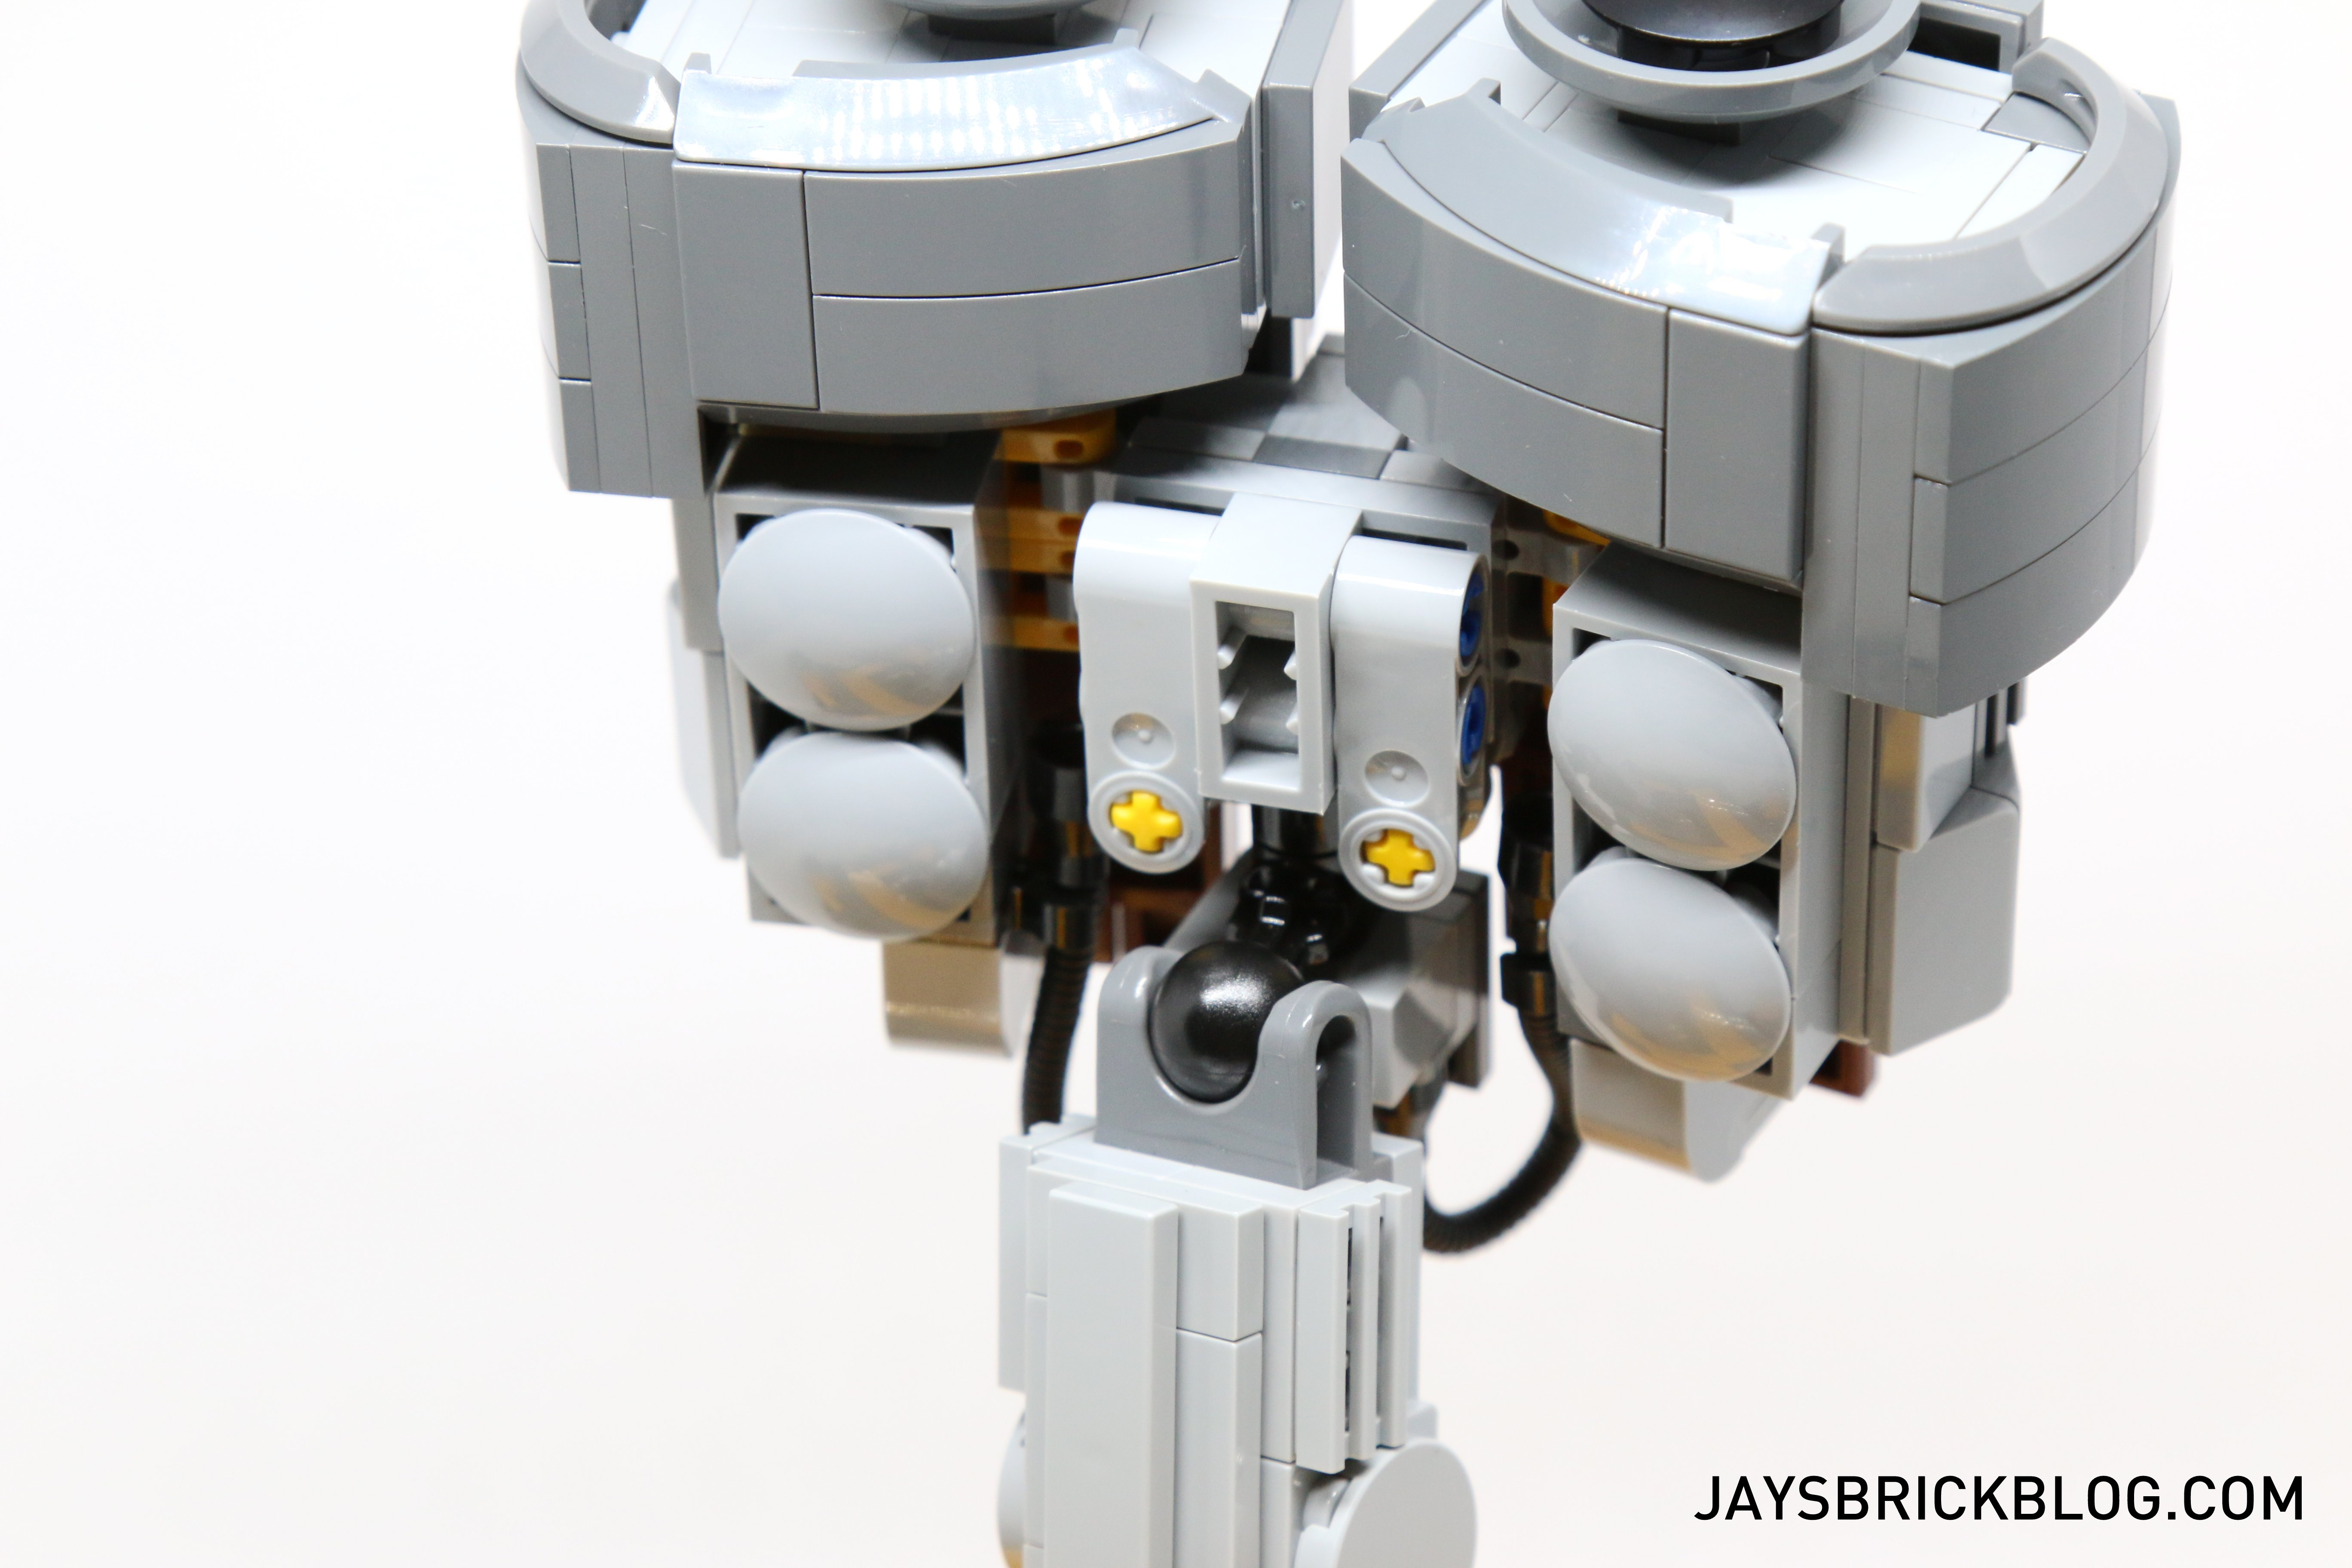 review: lego ideas 21303 wall-e